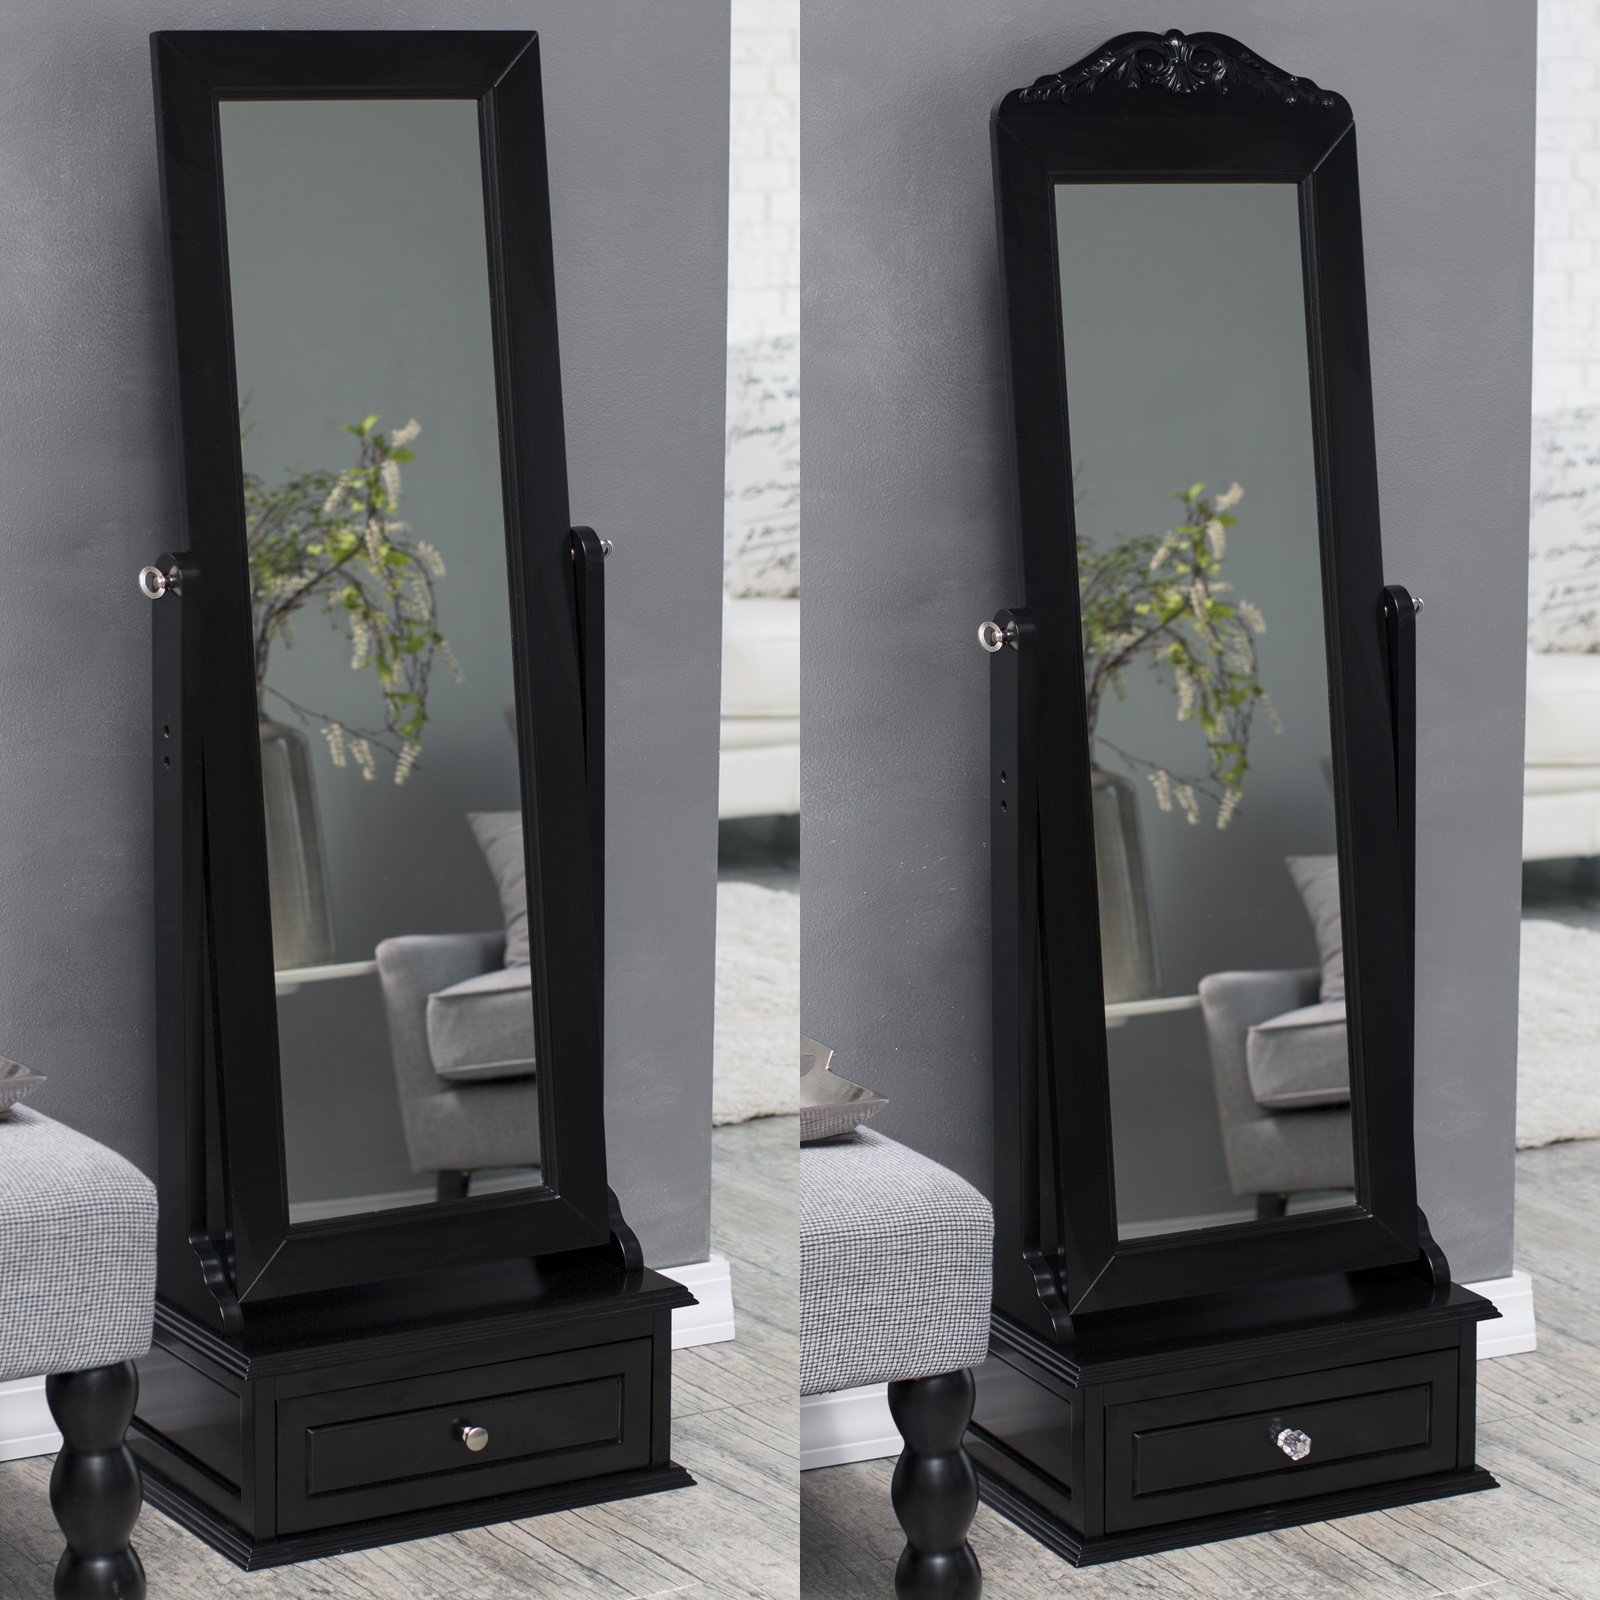 Belham Living Removable Decorative Top Cheval Mirror Black 21.5W x 60H in. by East West Basics (HK) Ltd